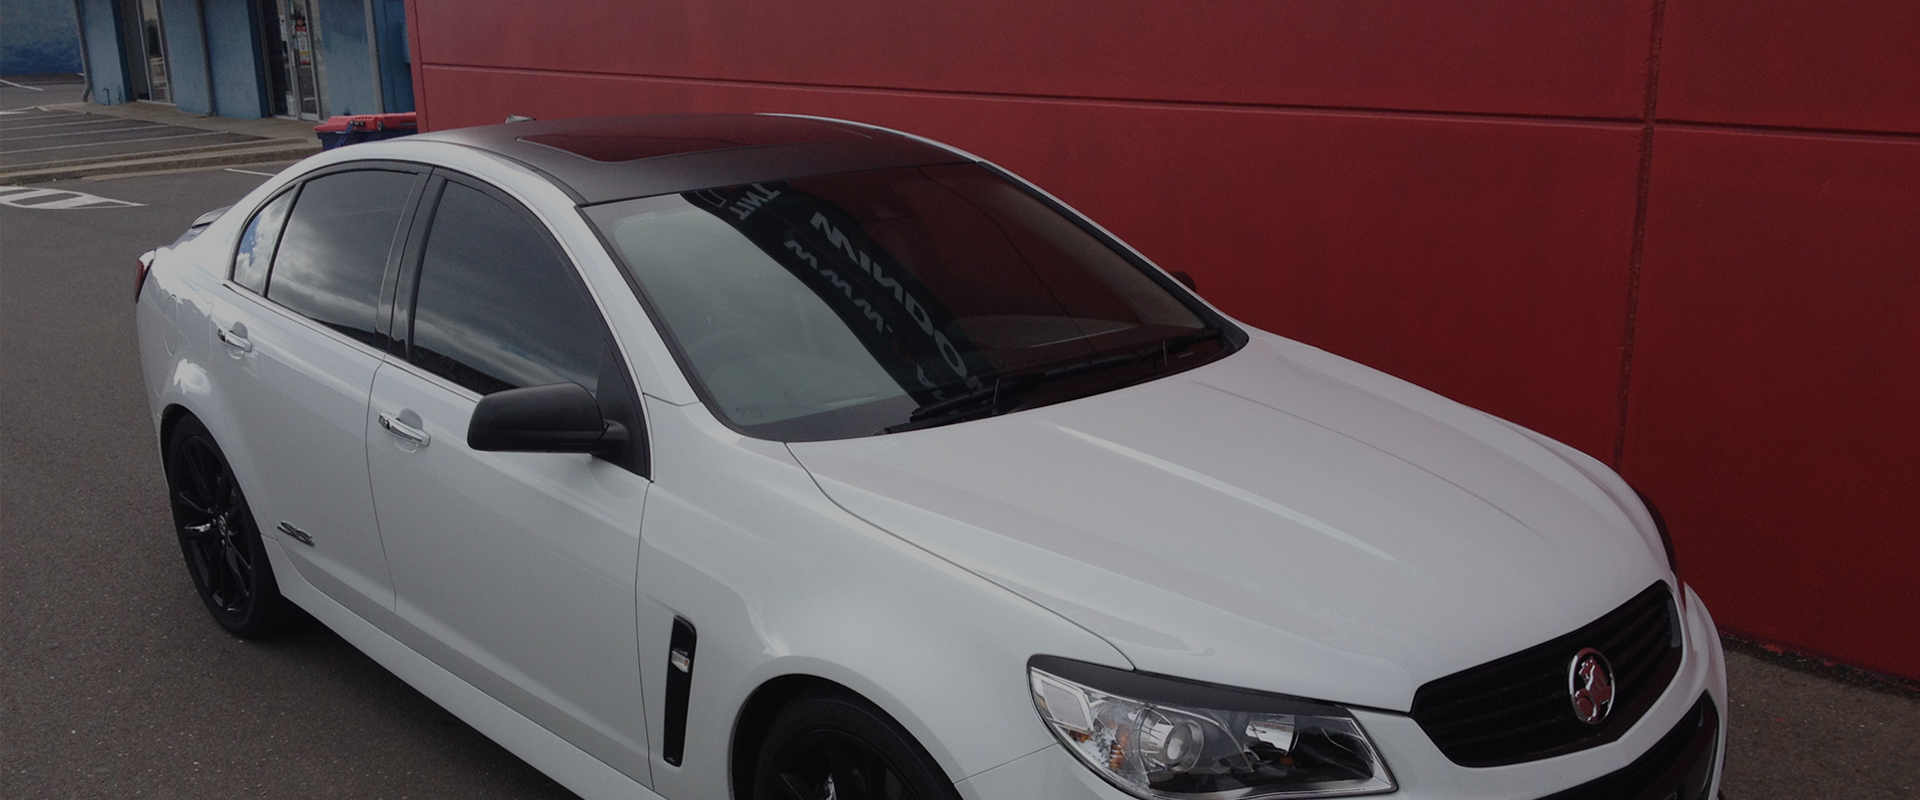 We Are Your Window Tinting Specialists